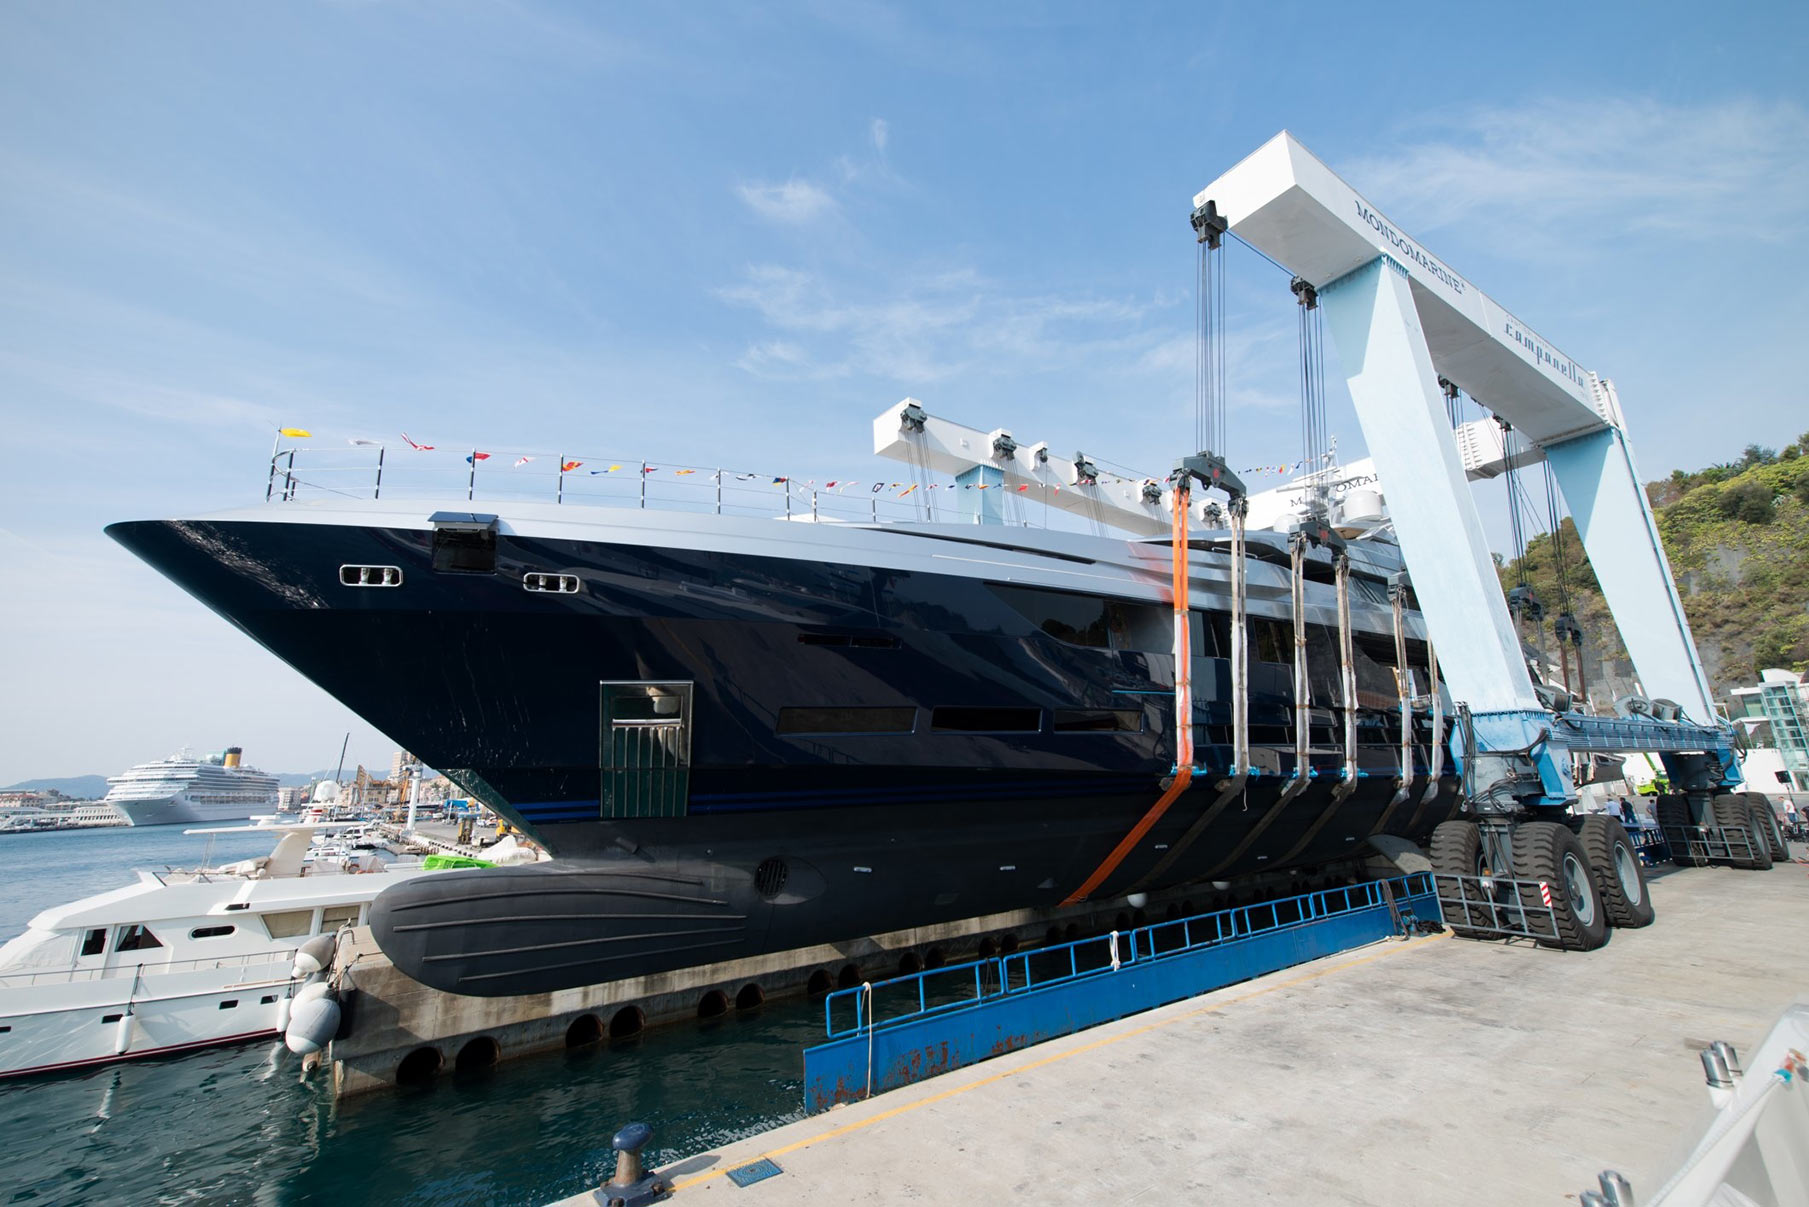 Mondomarine launches of its largest yacht